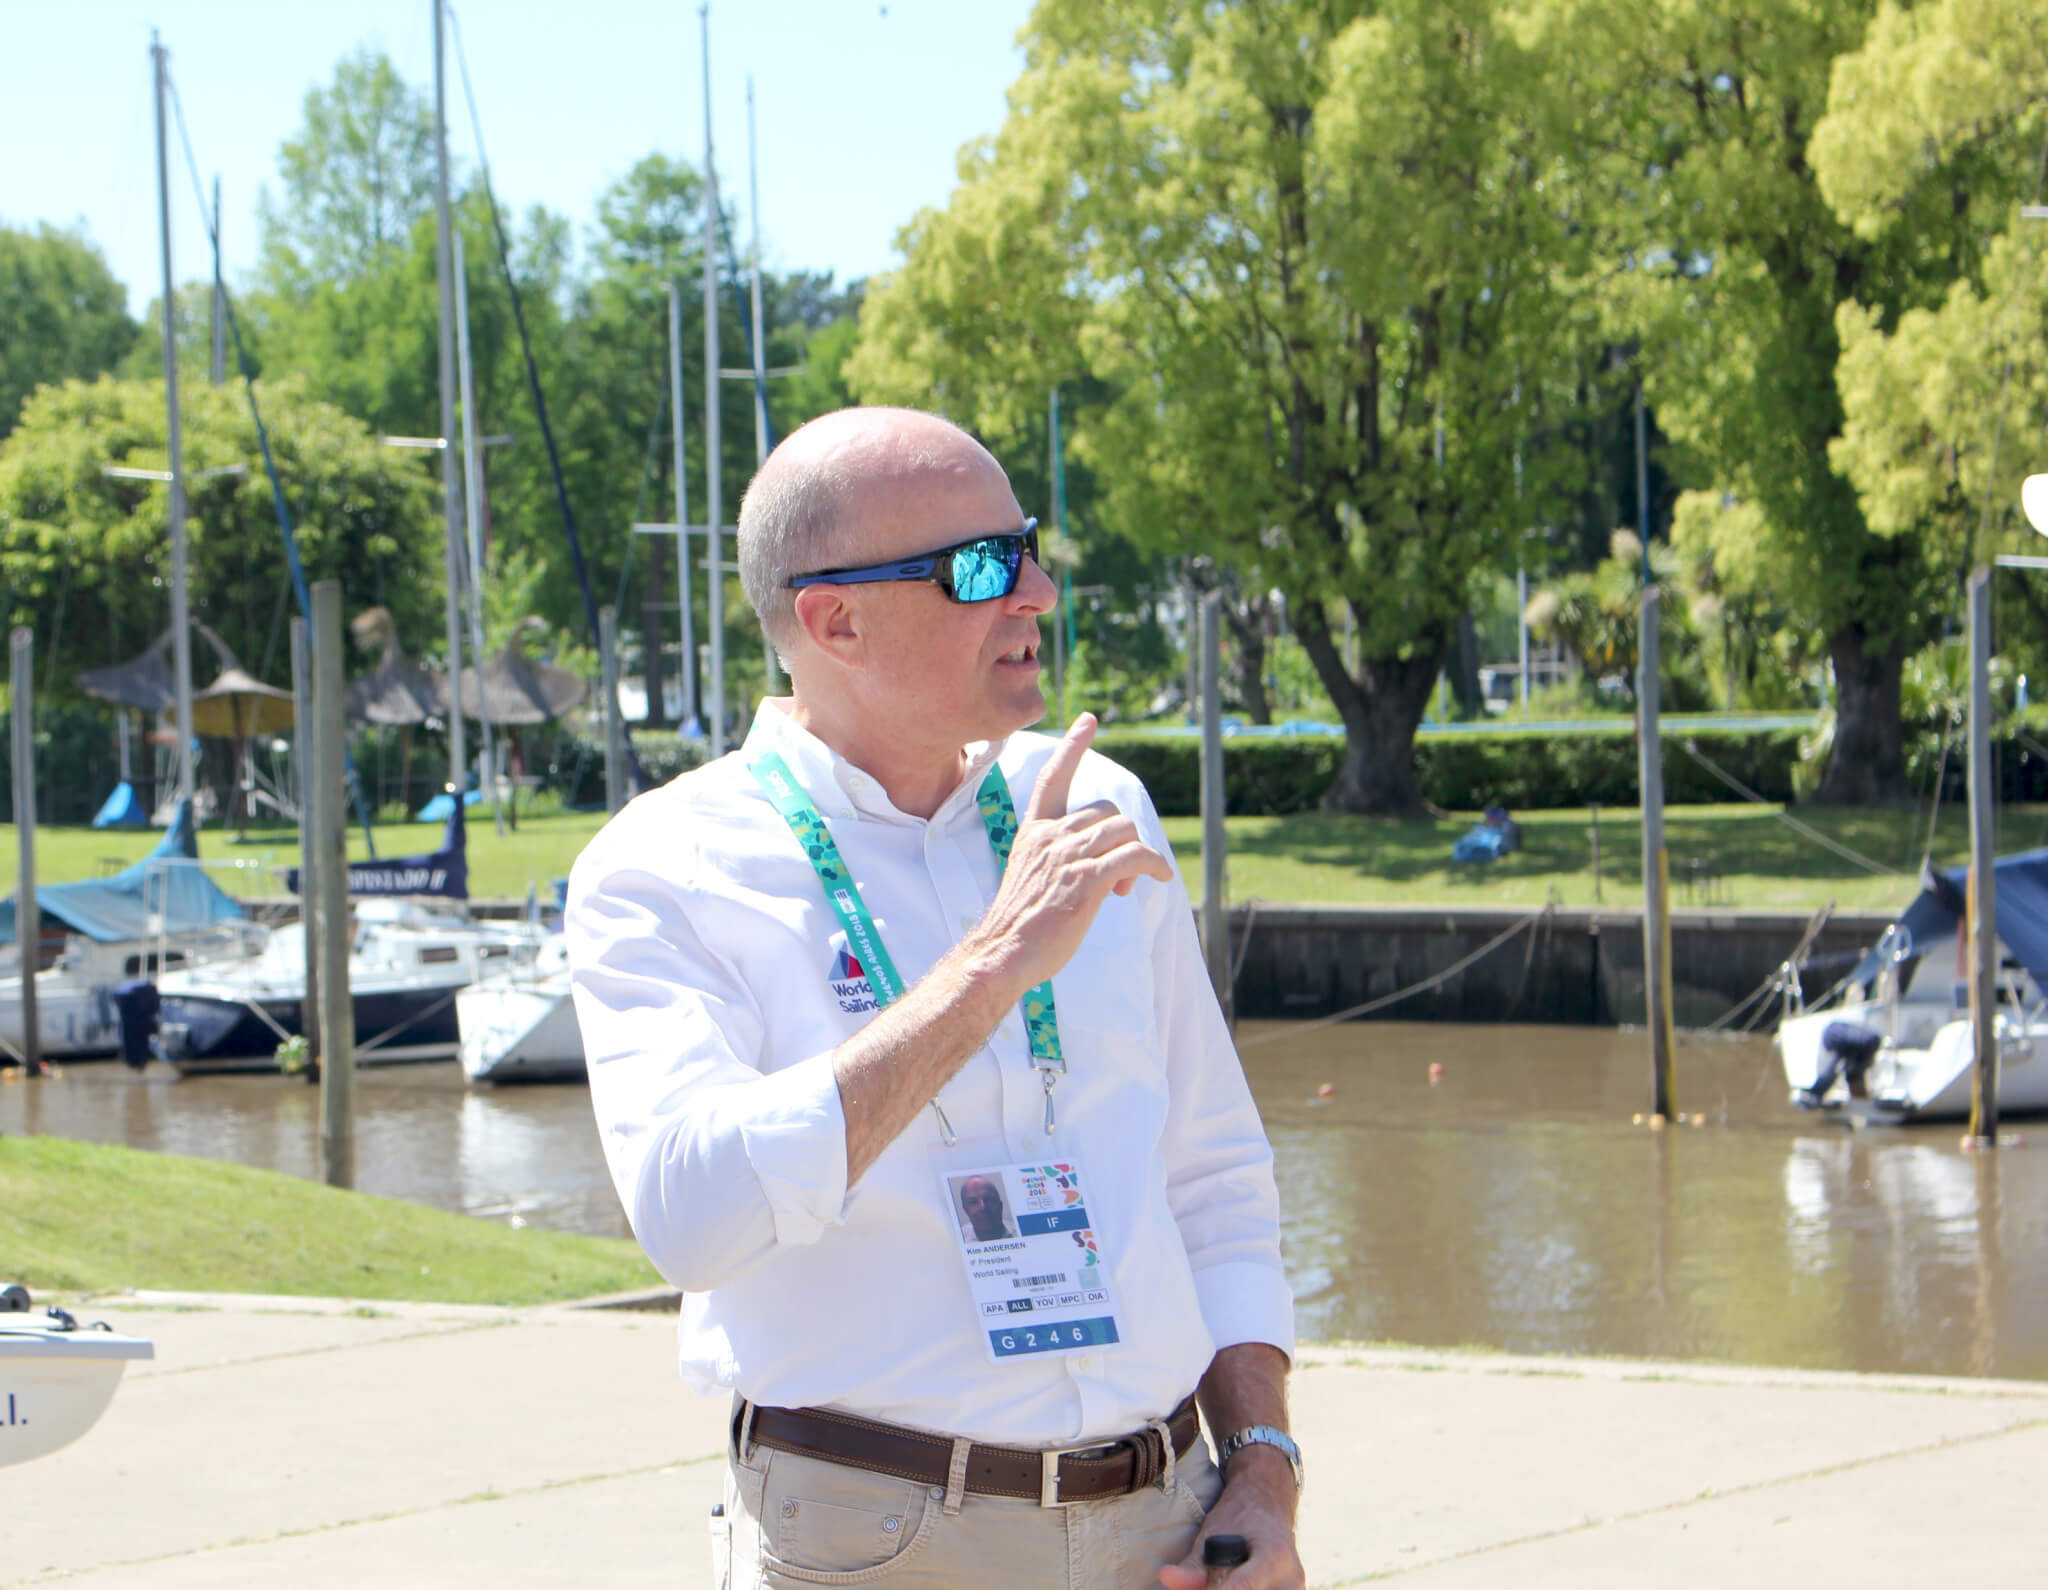 World Sailing President Kim Andersen claimed they have already started discussions with the International Paralympic Committee about restoring the sport to the Games in time for Los Angeles 2028 ©World Sailing